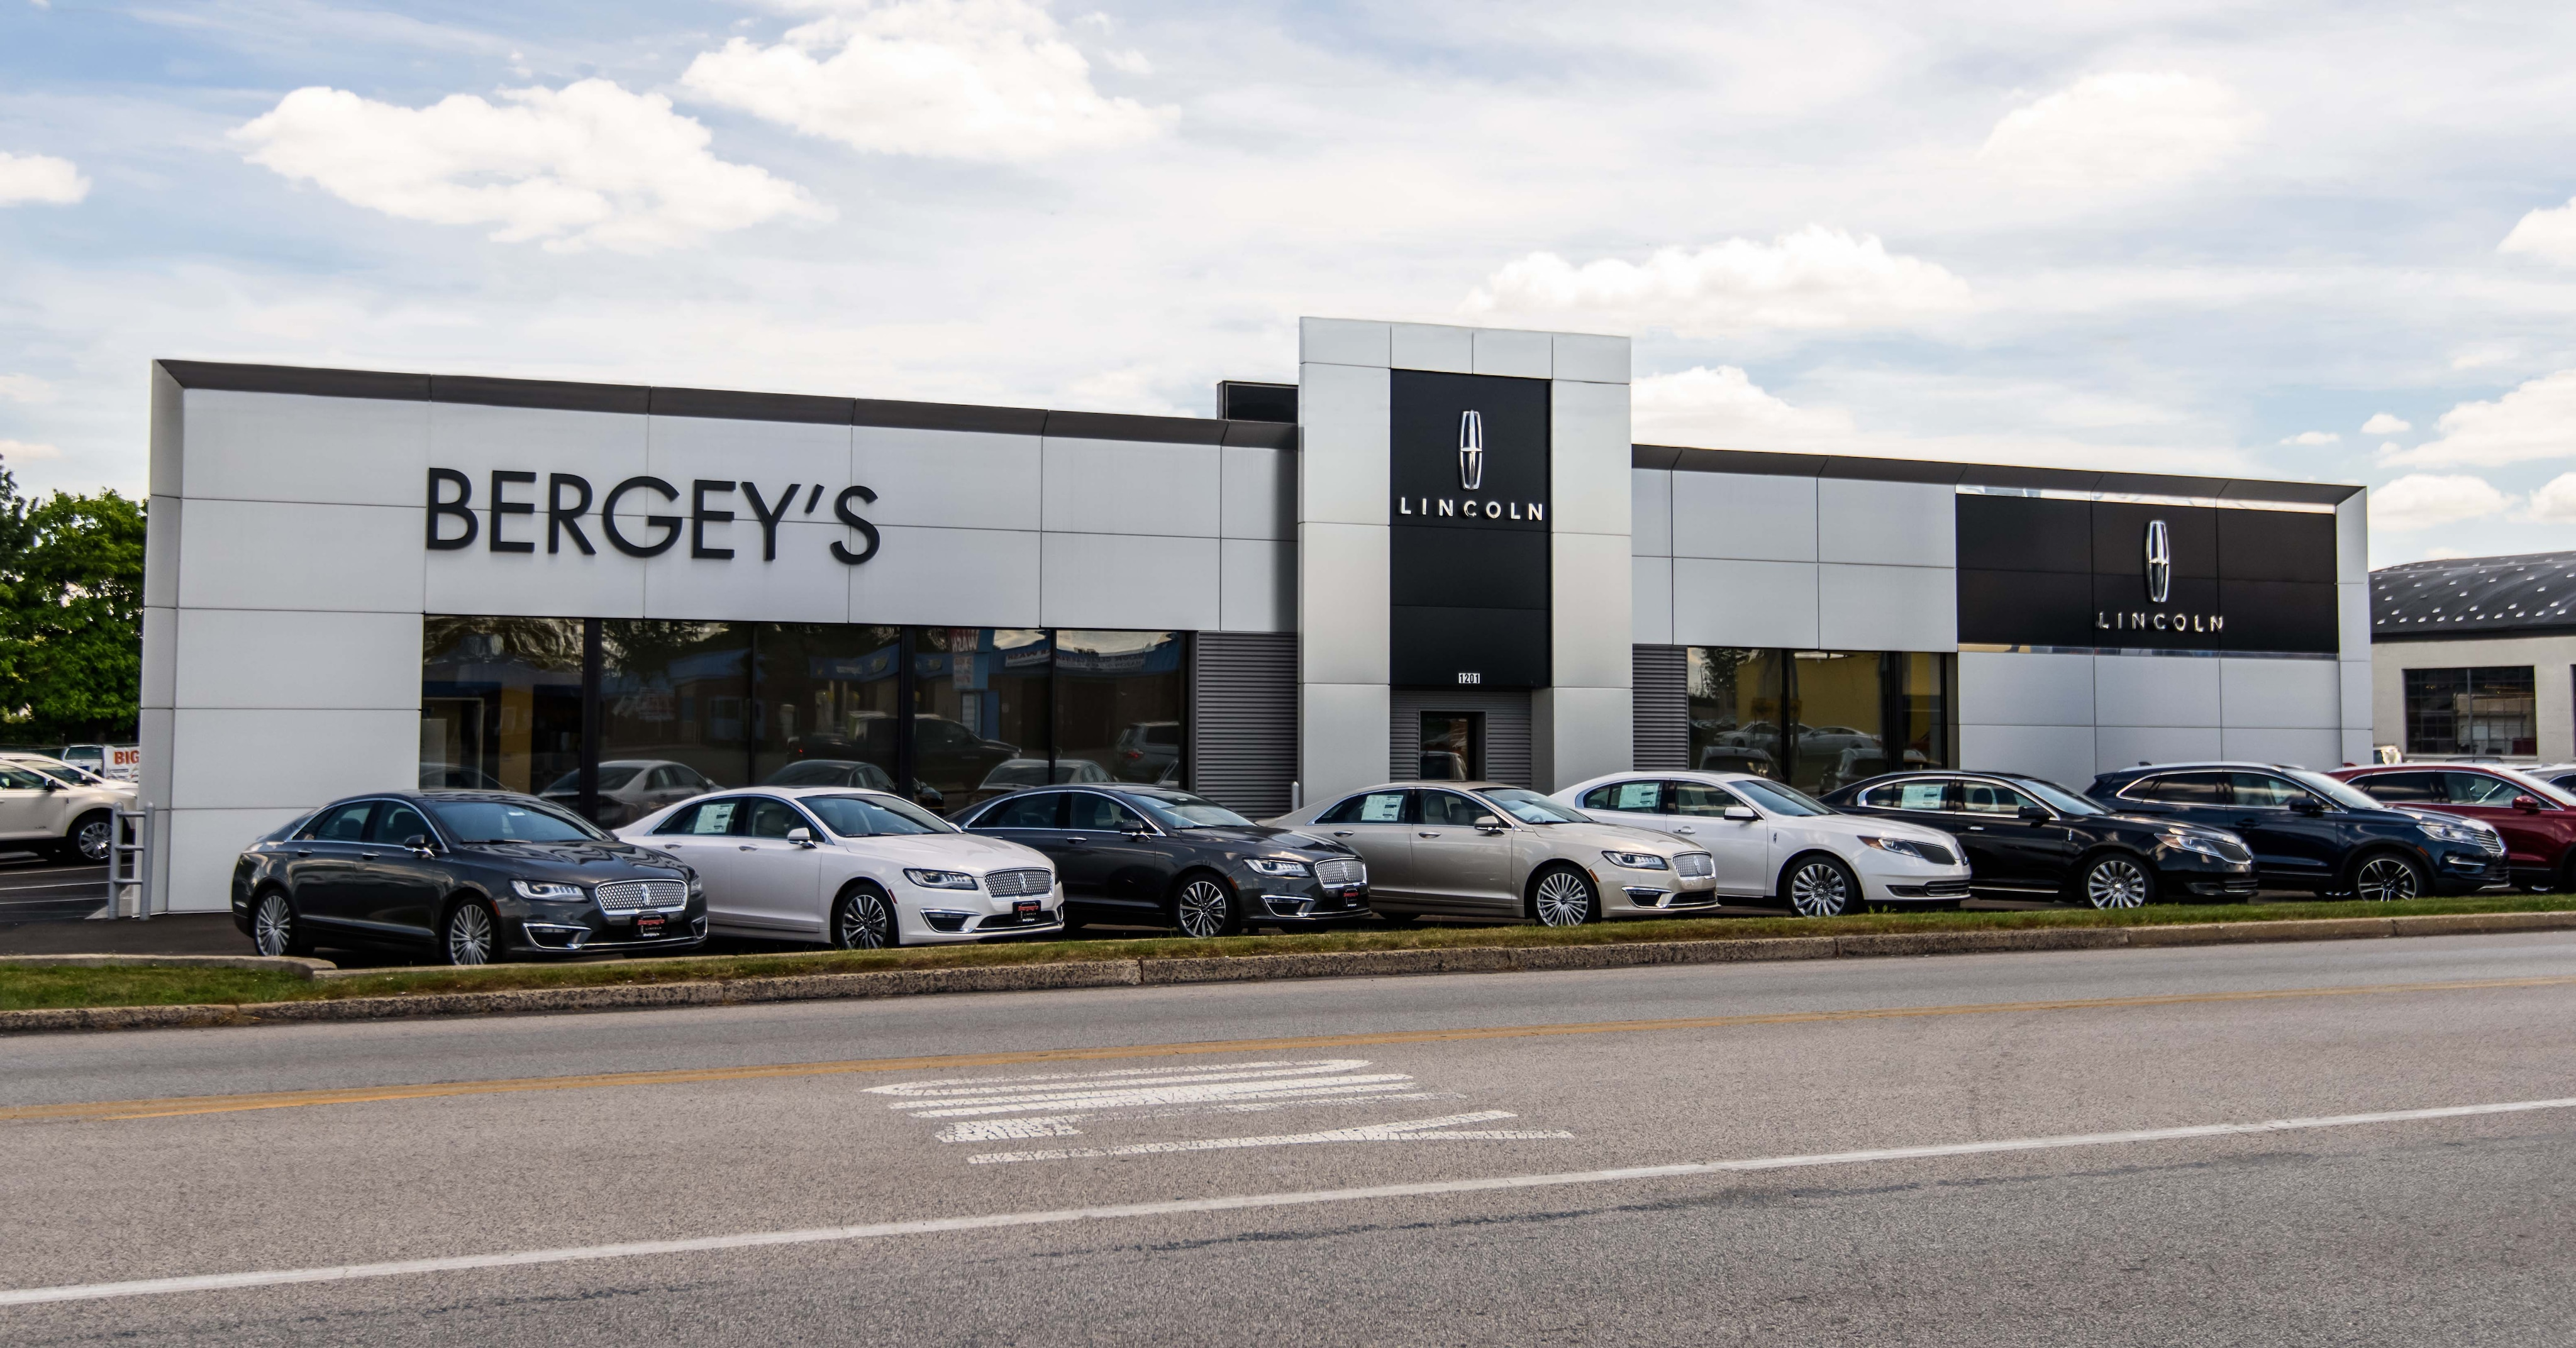 continental offers dealership ford dealer mercury vehicle lincoln used lethbridge college